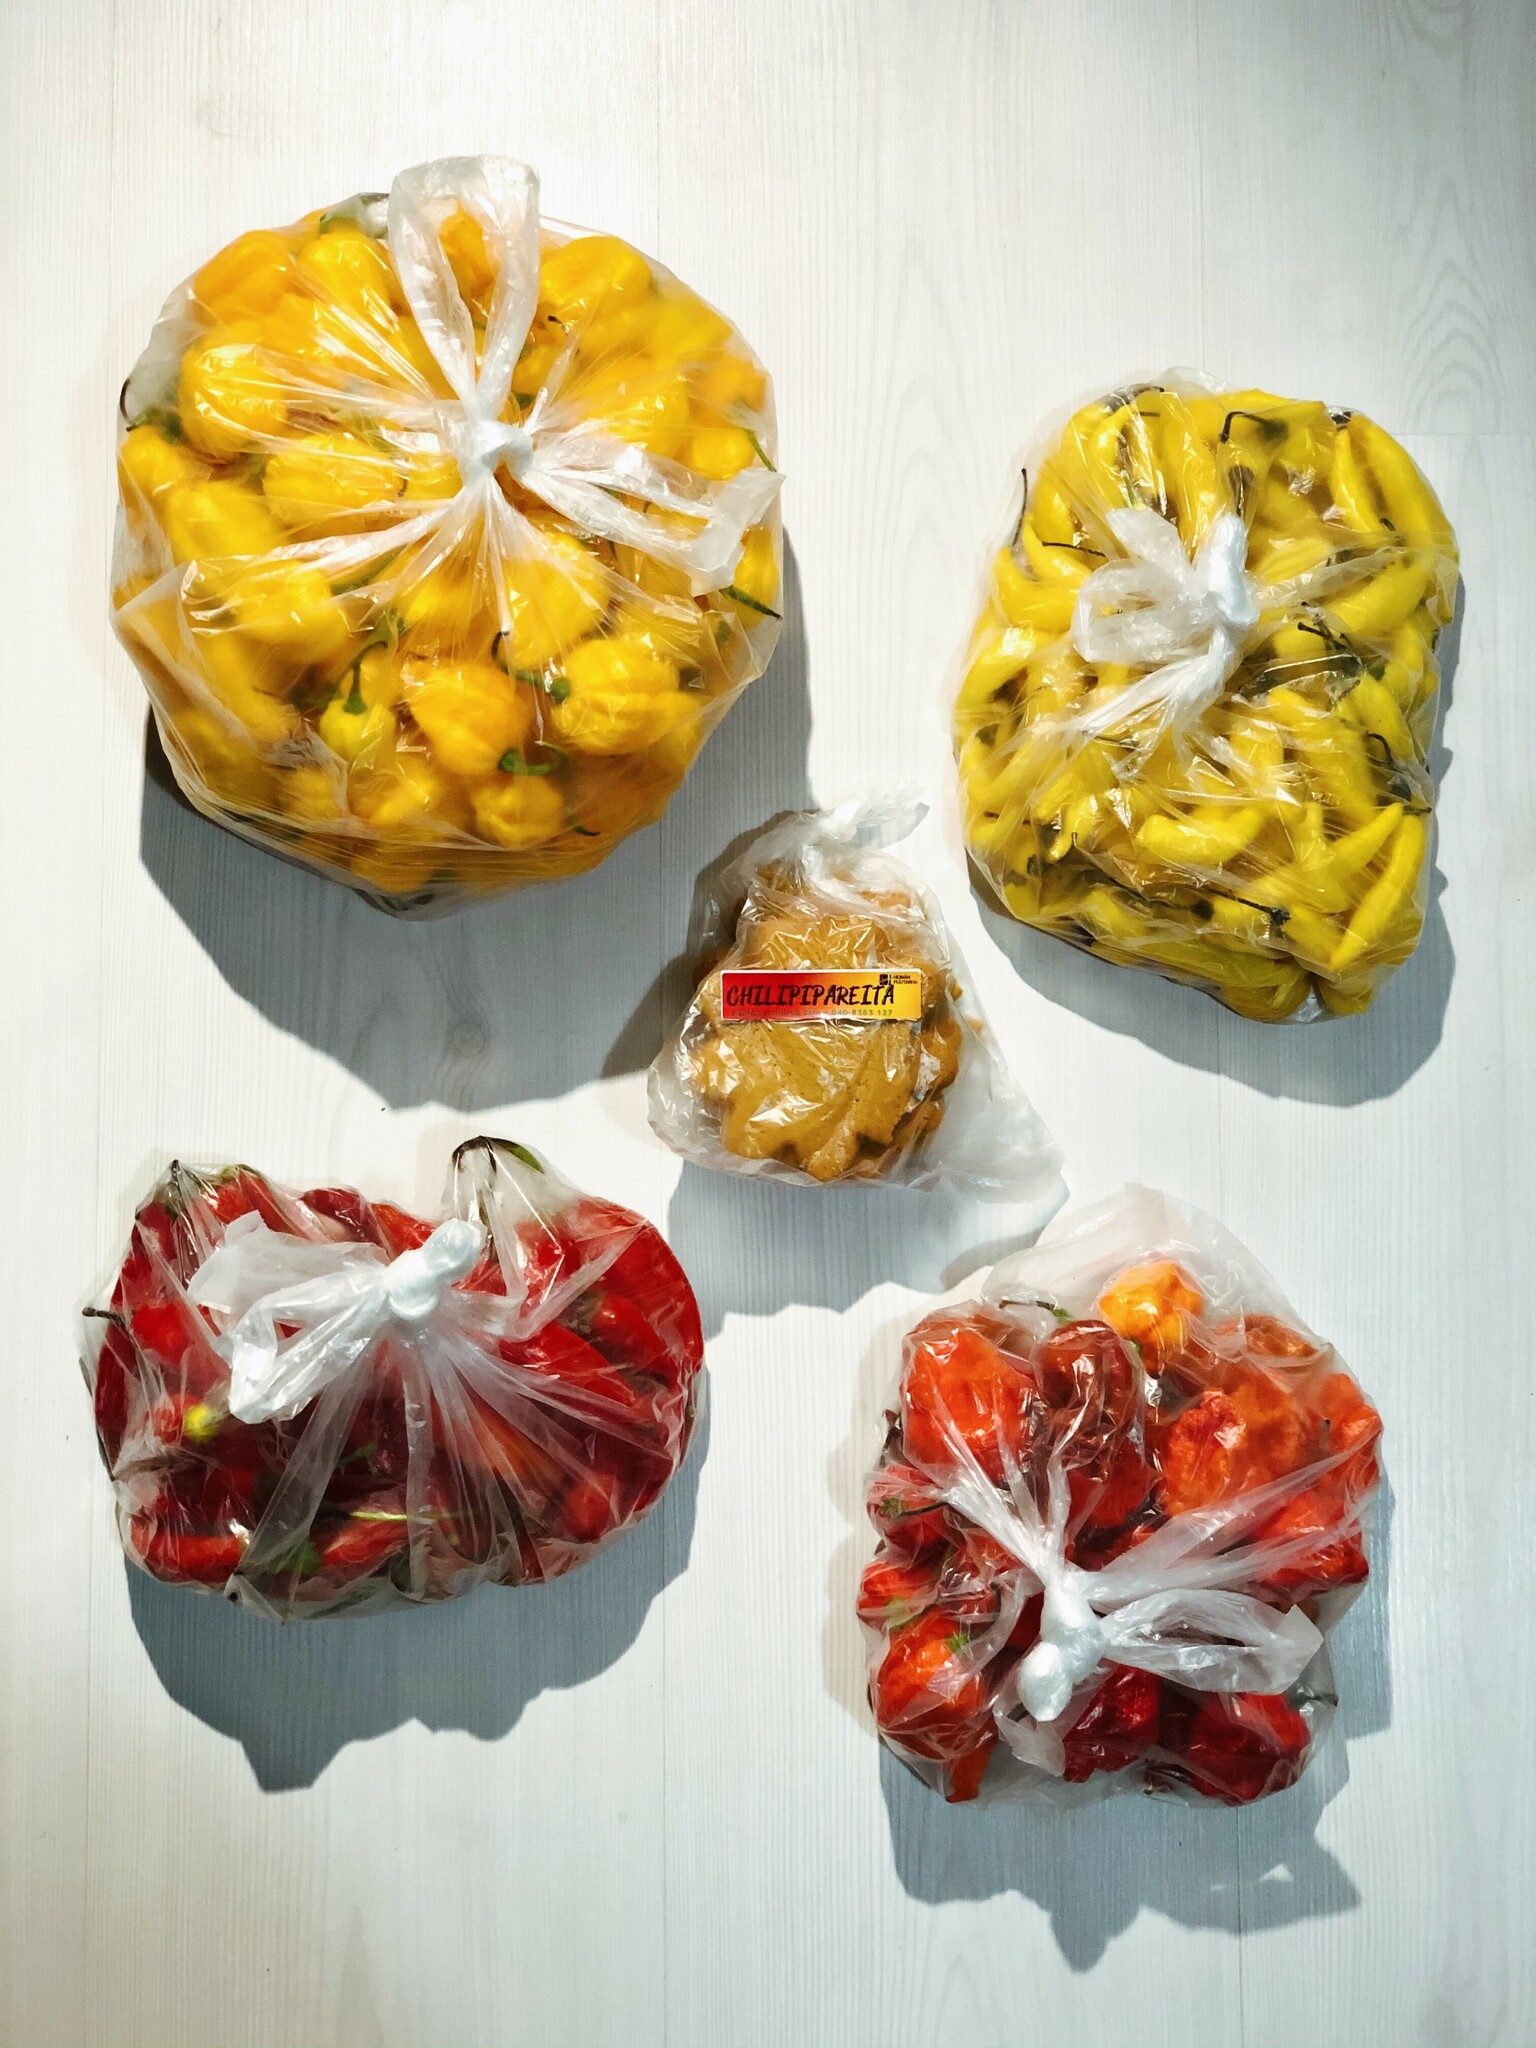 Four bags of chili peppers, left to right top to bottom: Scotch Bonnet, Lemon Drop, Aji Cristal and Carolina Reaper